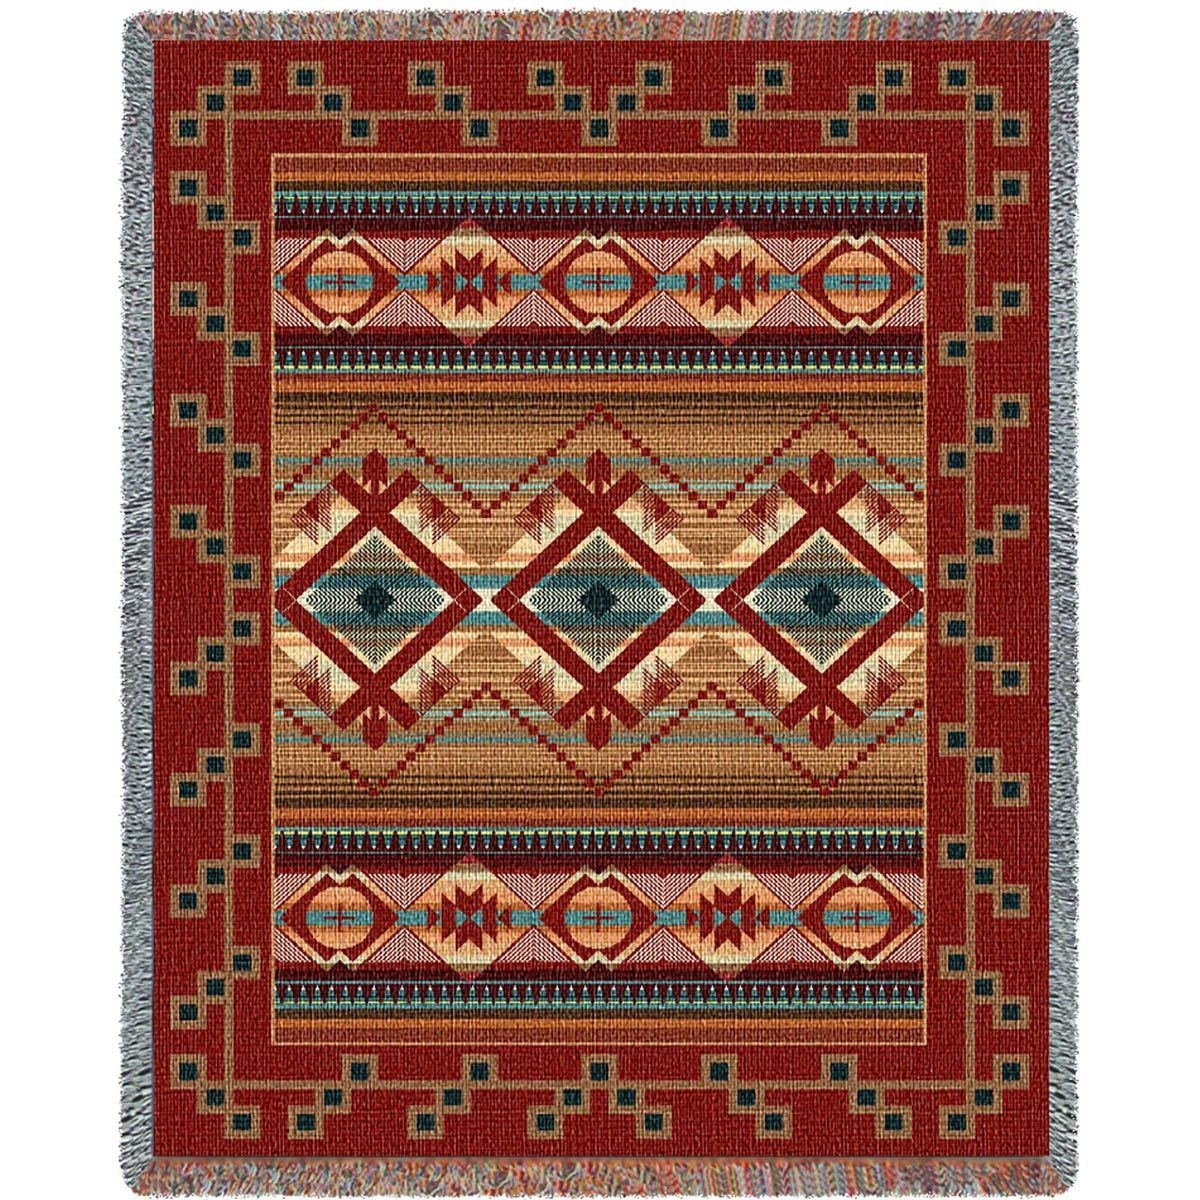 Las Cruces Tapestry Blanket